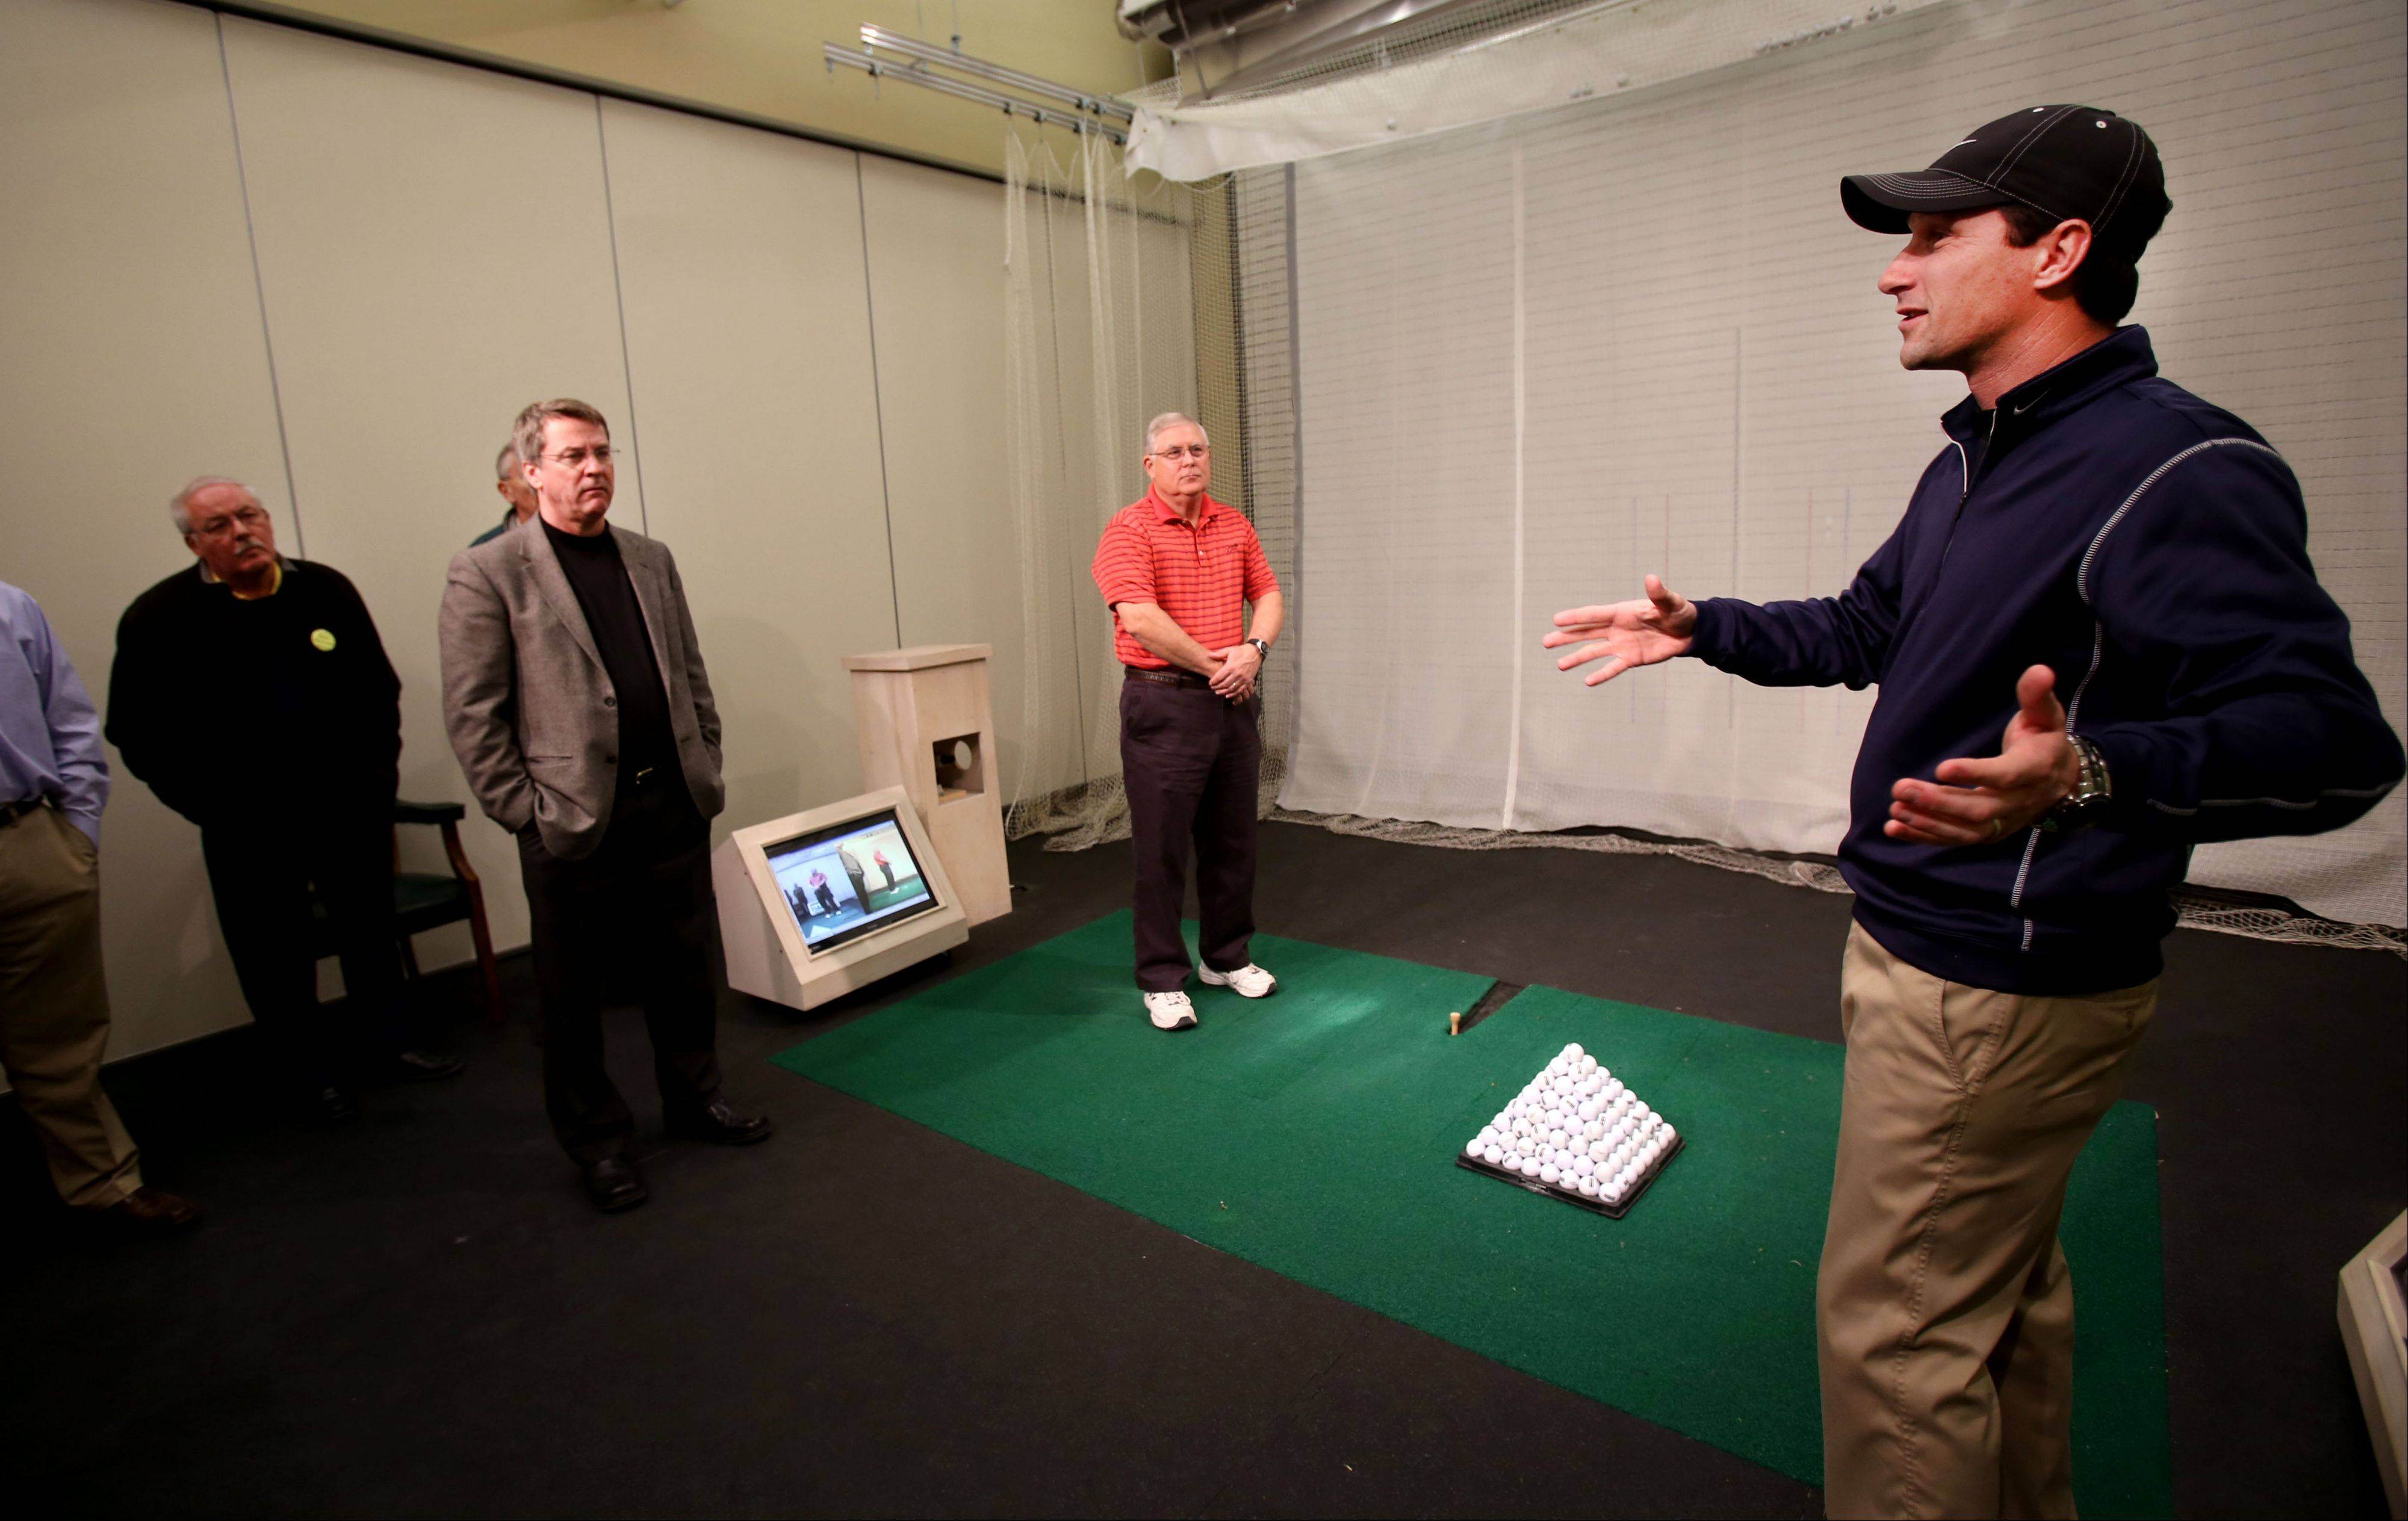 PGA teaching professional Jason Hyatt shows the swing analysis room to guests of the Subscriber Total Access event Monday at the Cantigny Golf Academy at Cantigny Park in Wheaton.